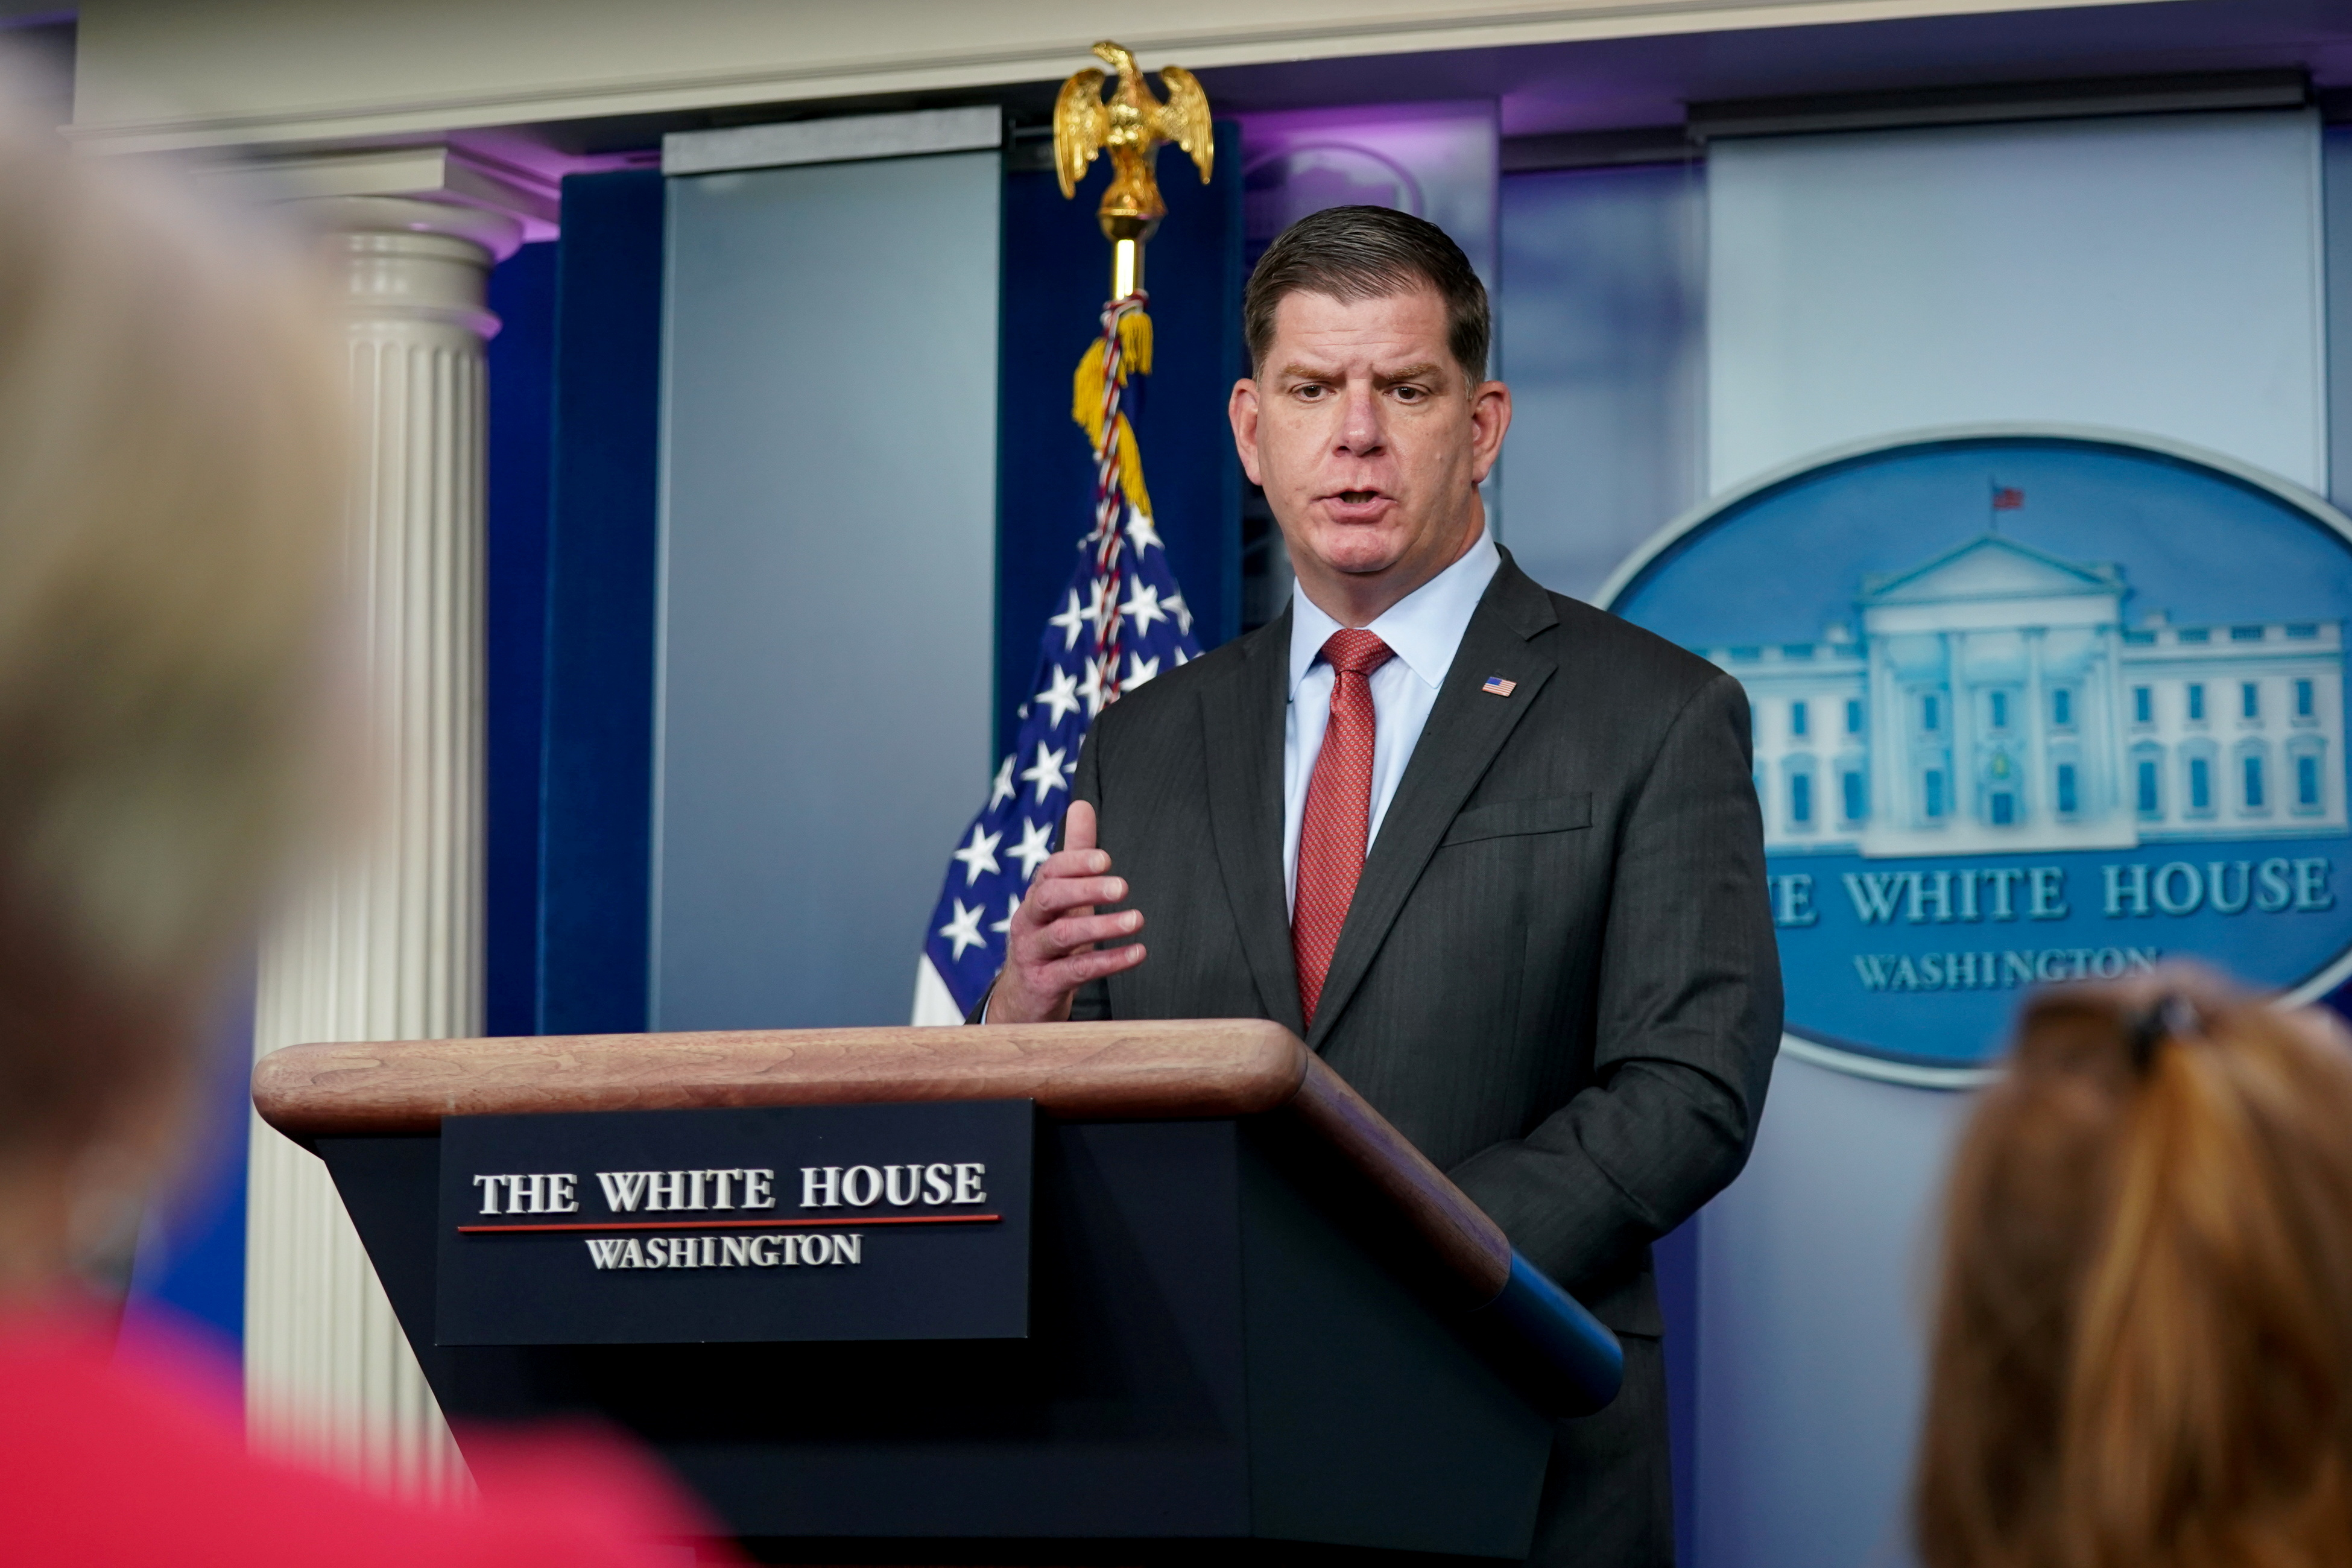 Secretary of Labor Marty Walsh speaks during a news conference at the White House in Washington, U.S. April 2, 2021. REUTERS/Erin Scott